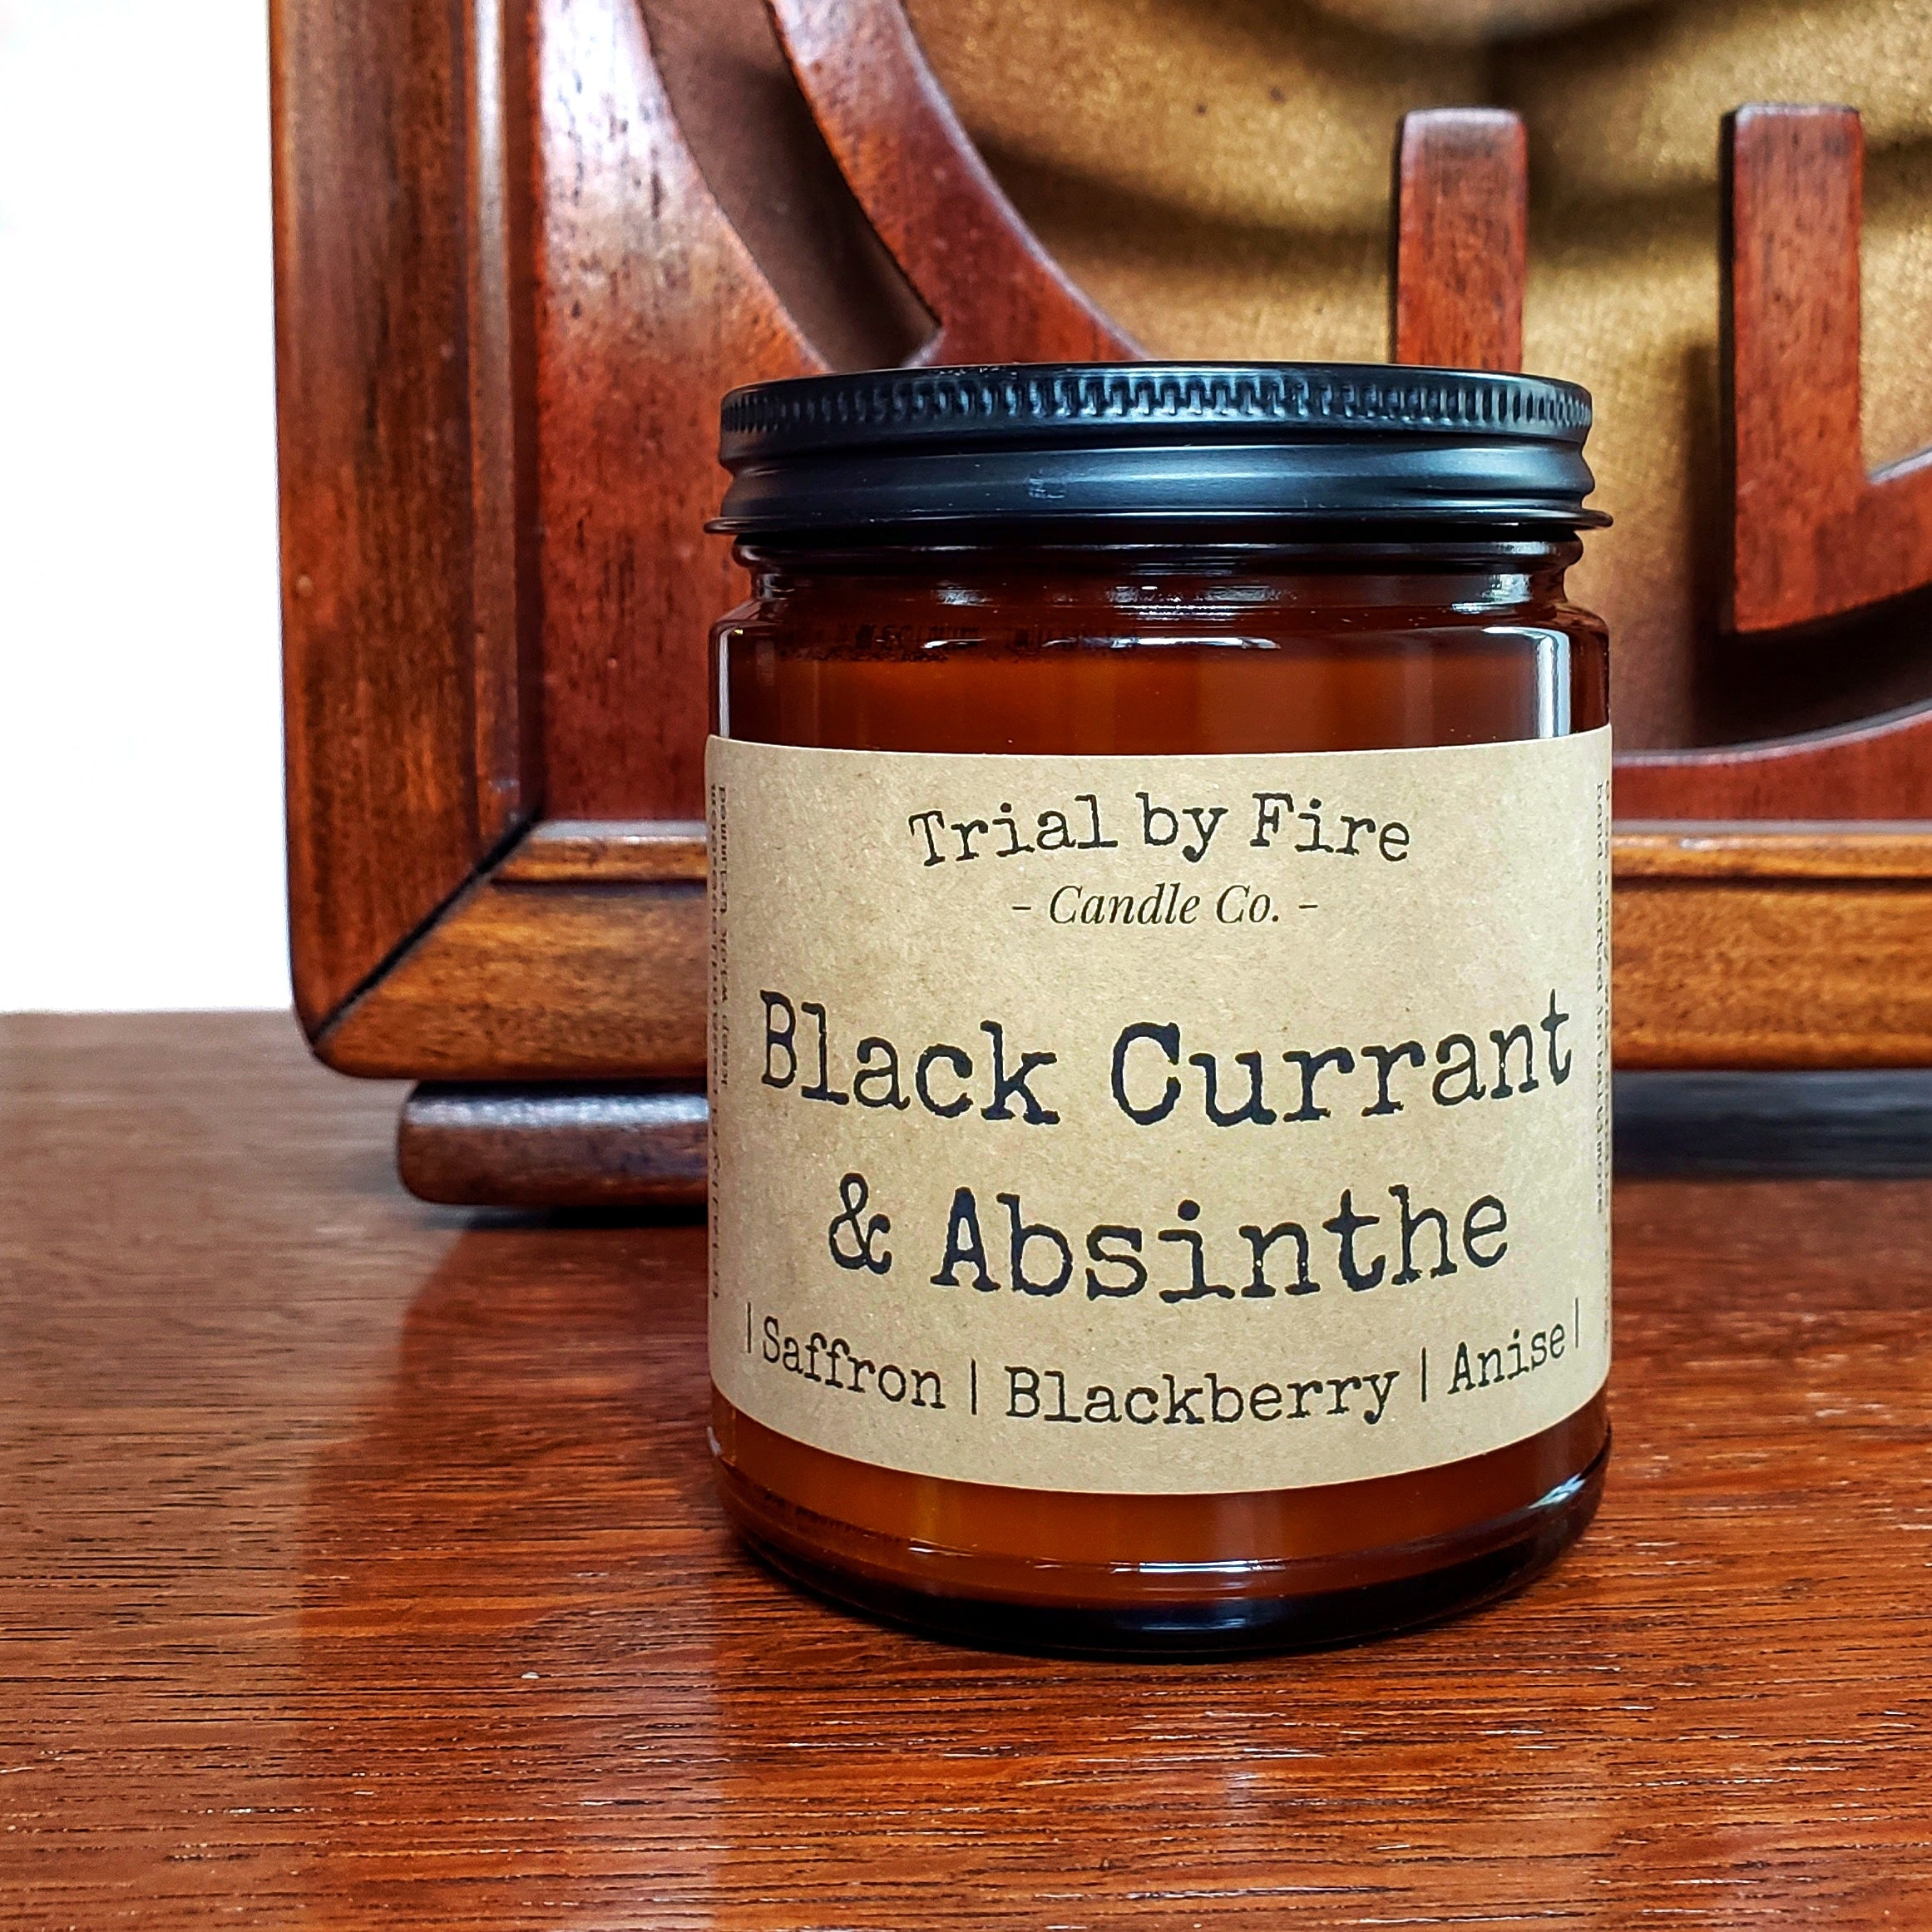 Black Currant & Absinthe